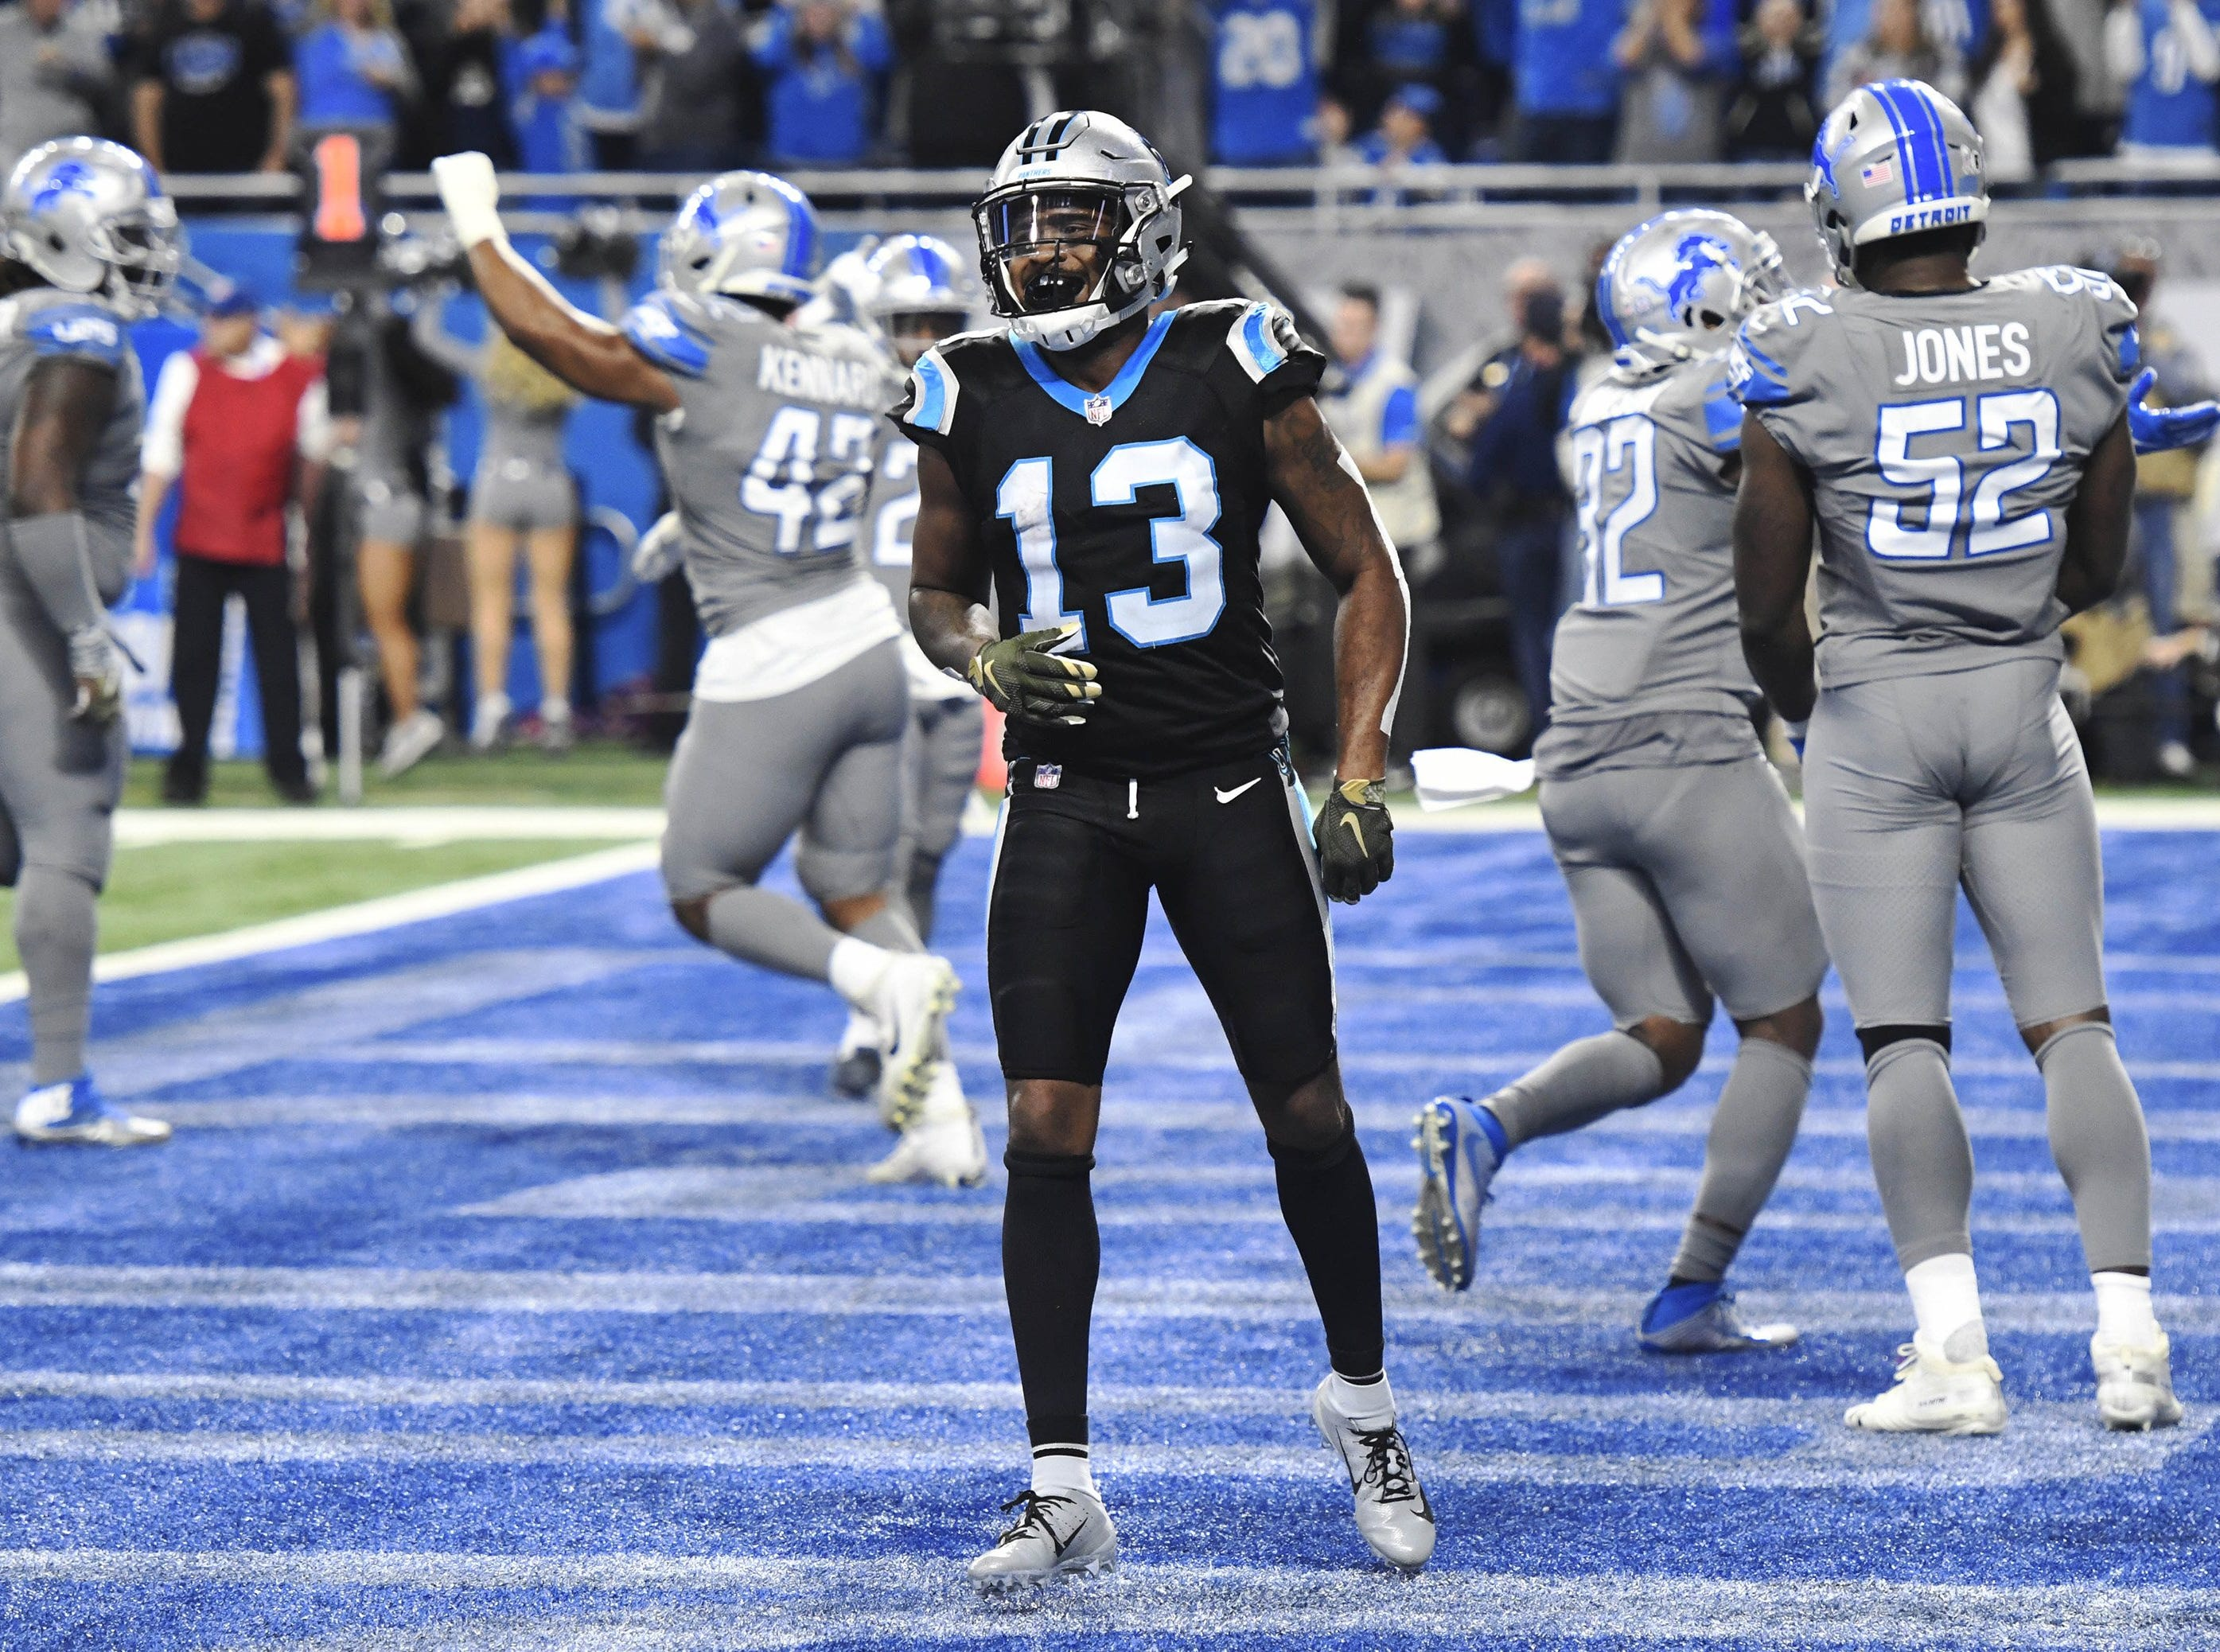 Lions defenders celebrate after breaking up a two-point conversion pass intended for Panthers wide receiver Jarius Wright late in the Lions' 20-19 win on Sunday, Nov. 18, 2018, at Ford Field.